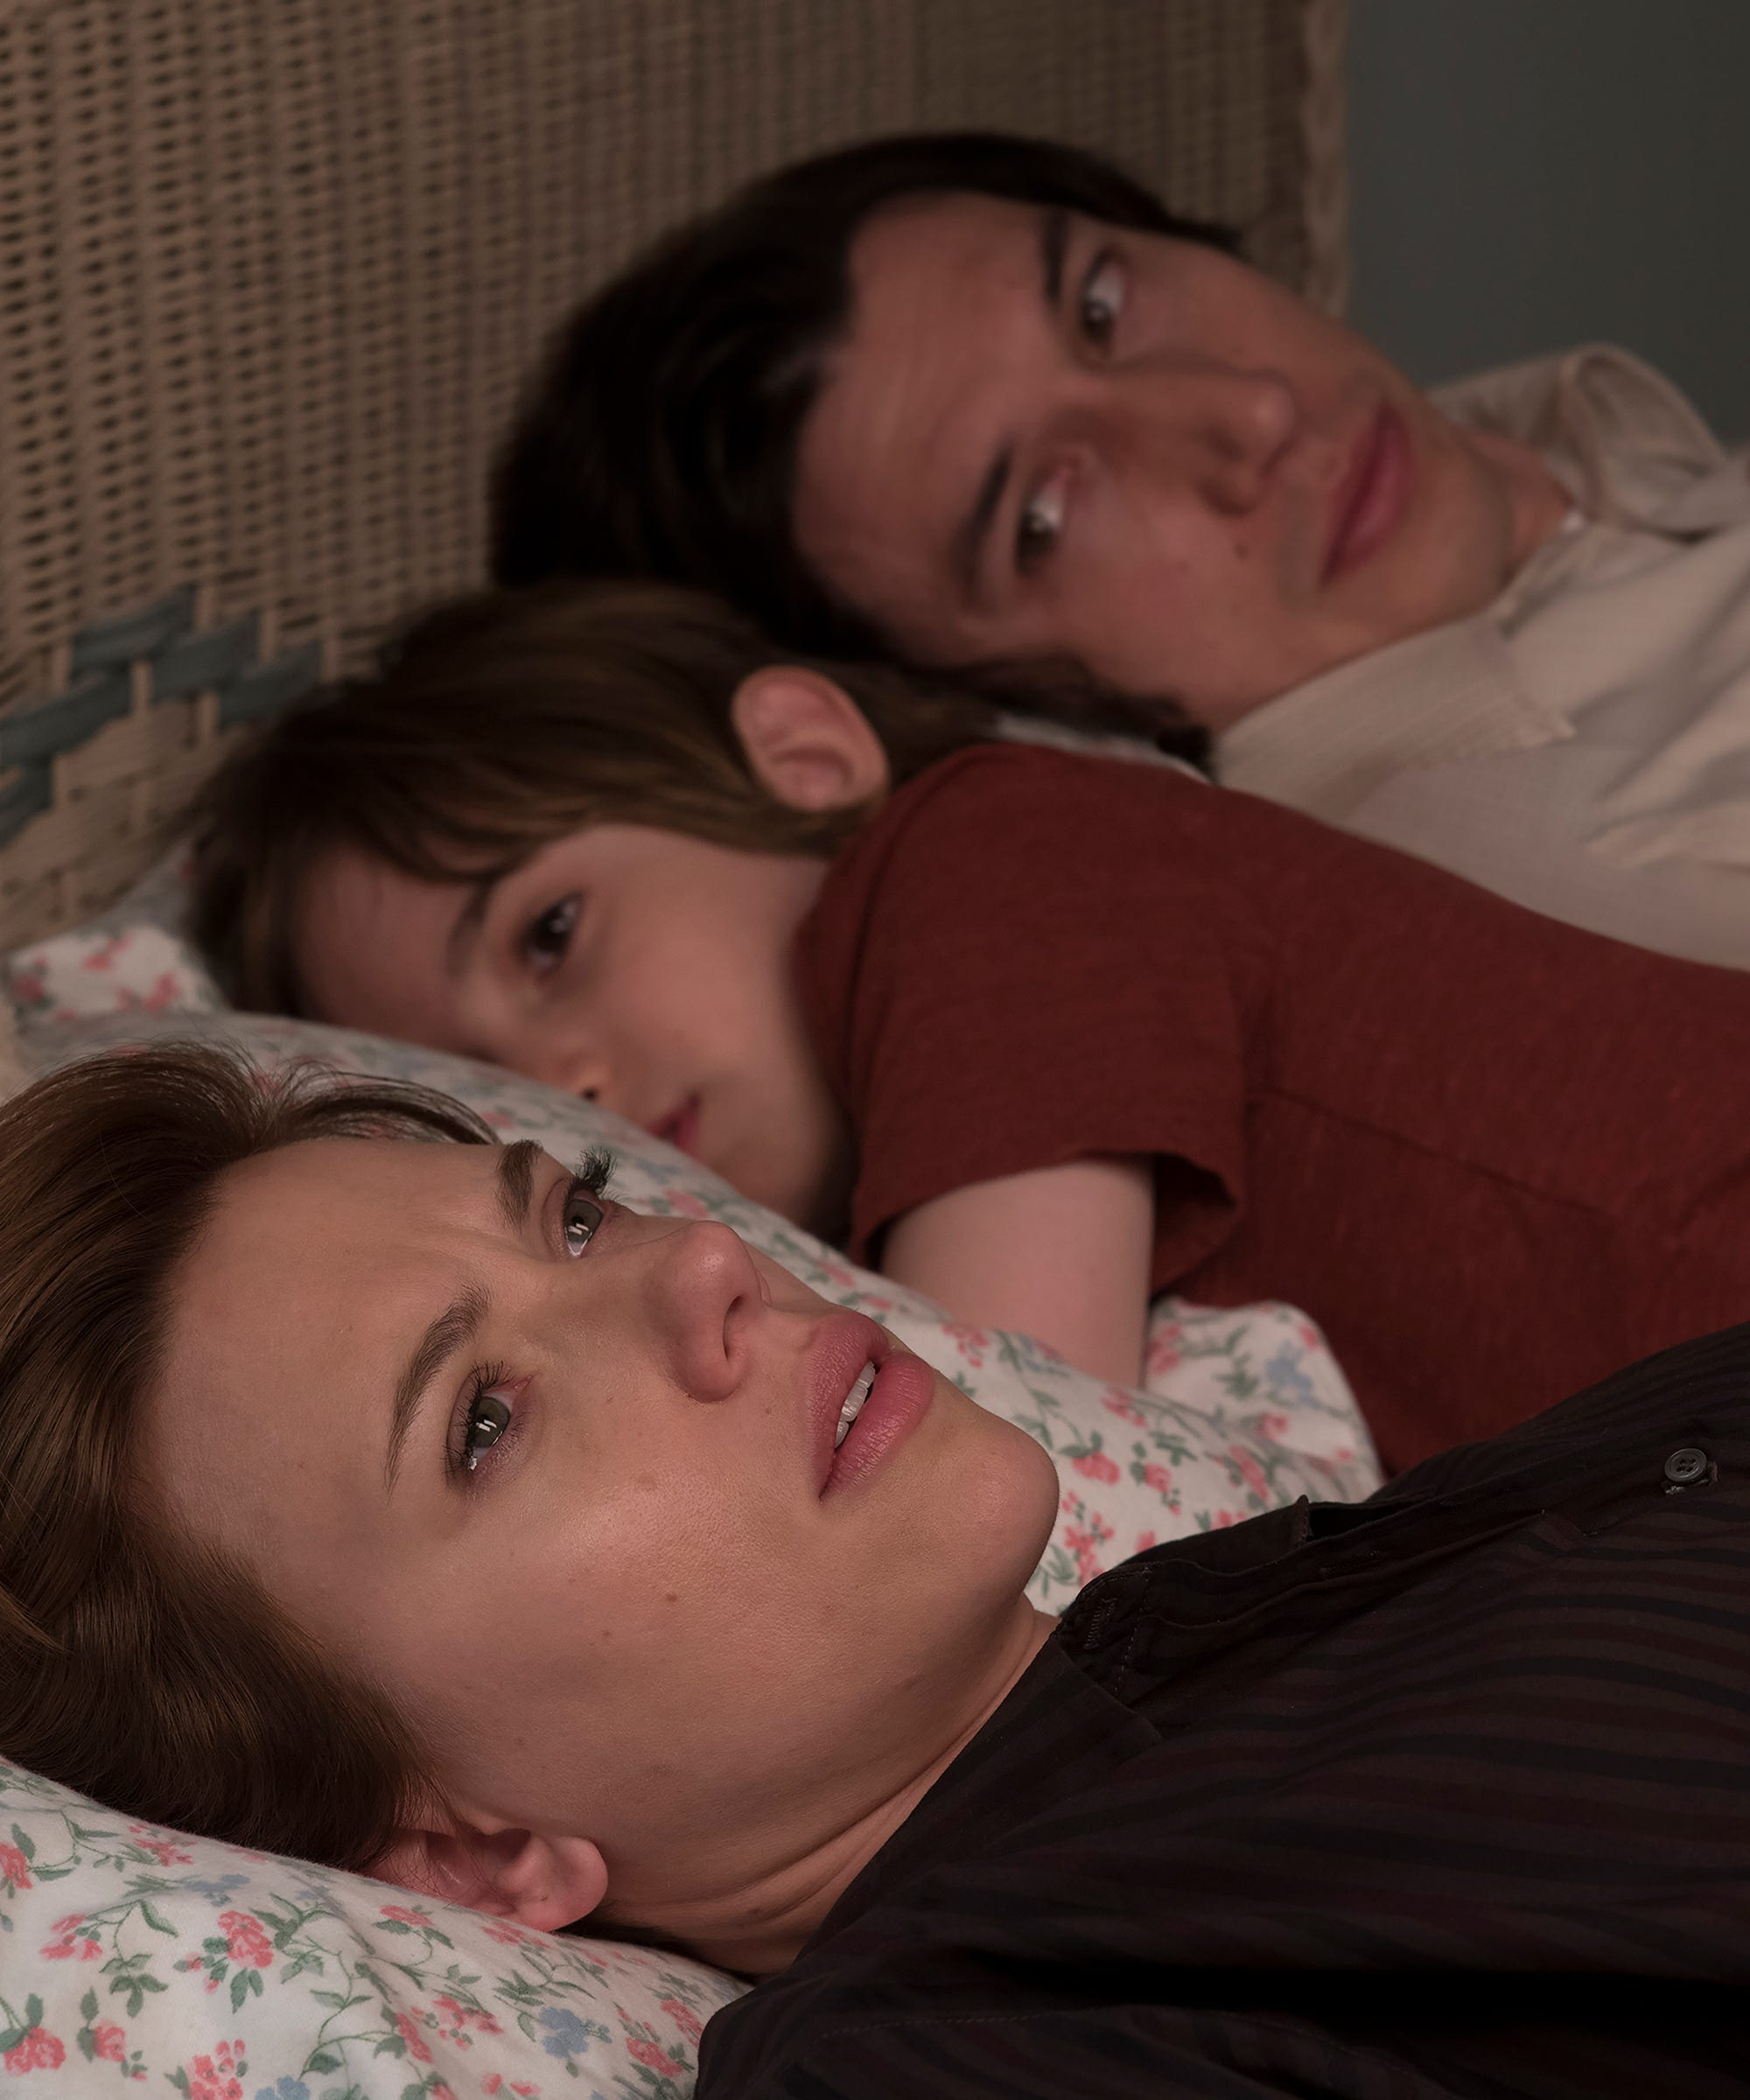 Scarlett Johansson & Adam Driver Share What They Love About Each Other In Marriage Story Teasers